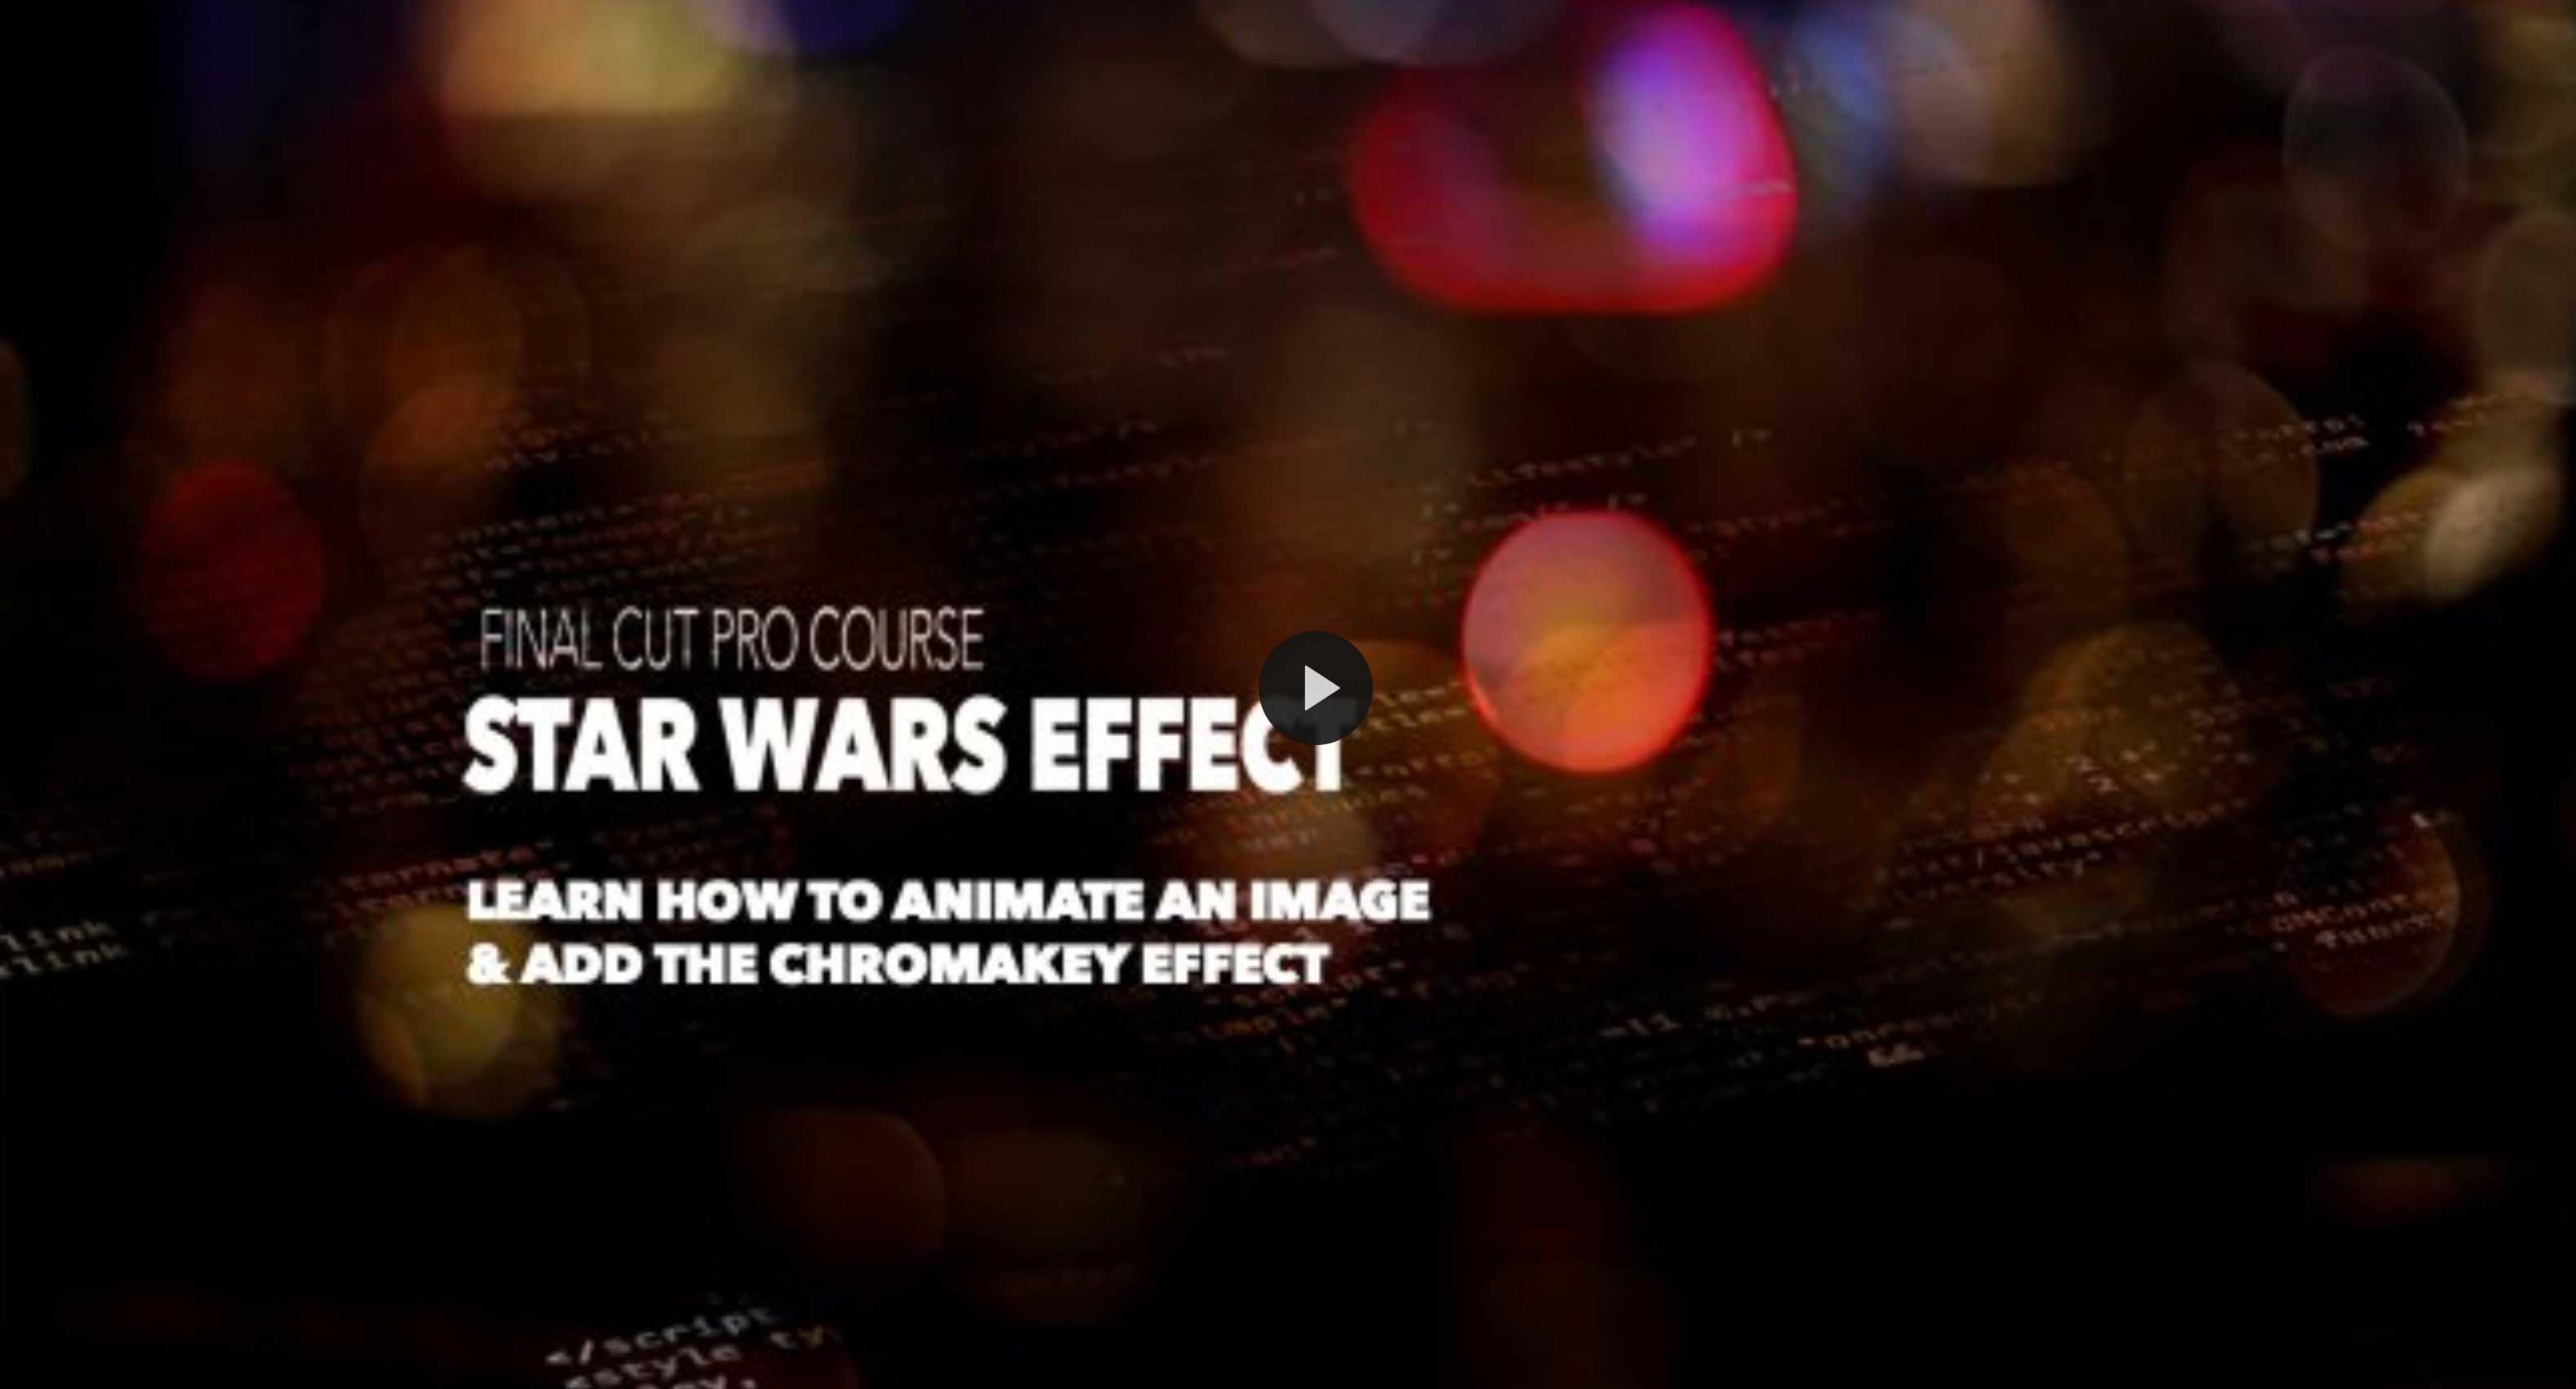 The Star Wars Effect: Create the Chromakey Effect and